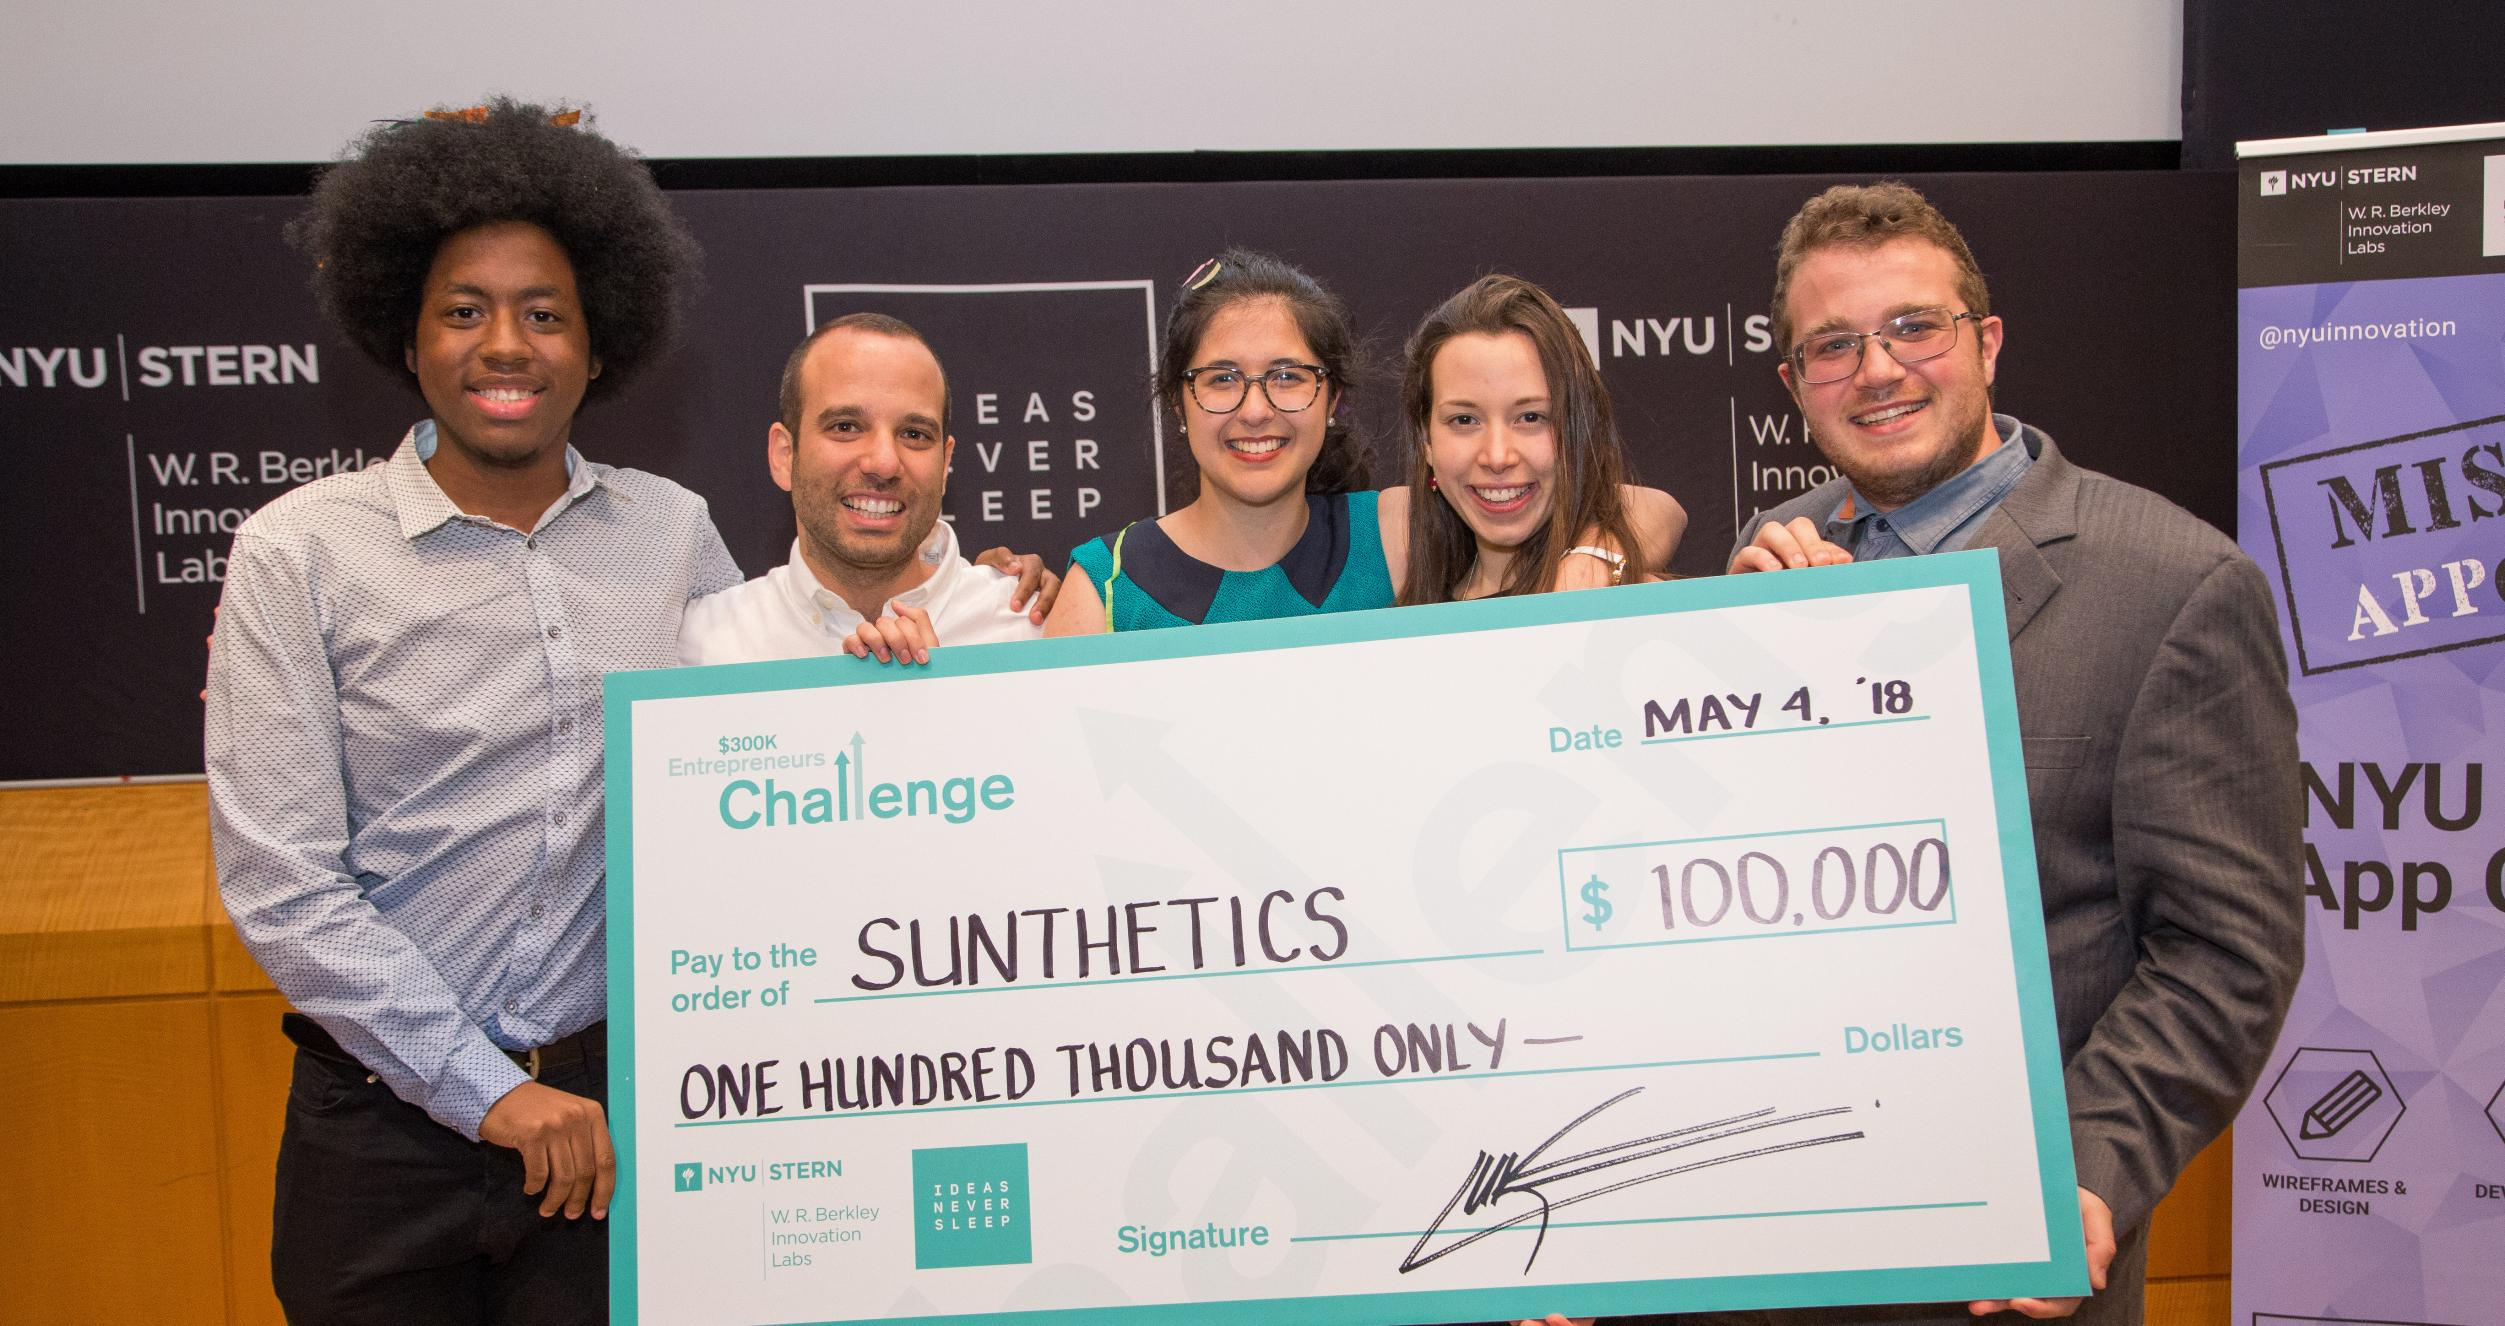 A team of five students holding a large check for $100,000 after winning a grand prize at the $300K Entrepreneurs Challenge